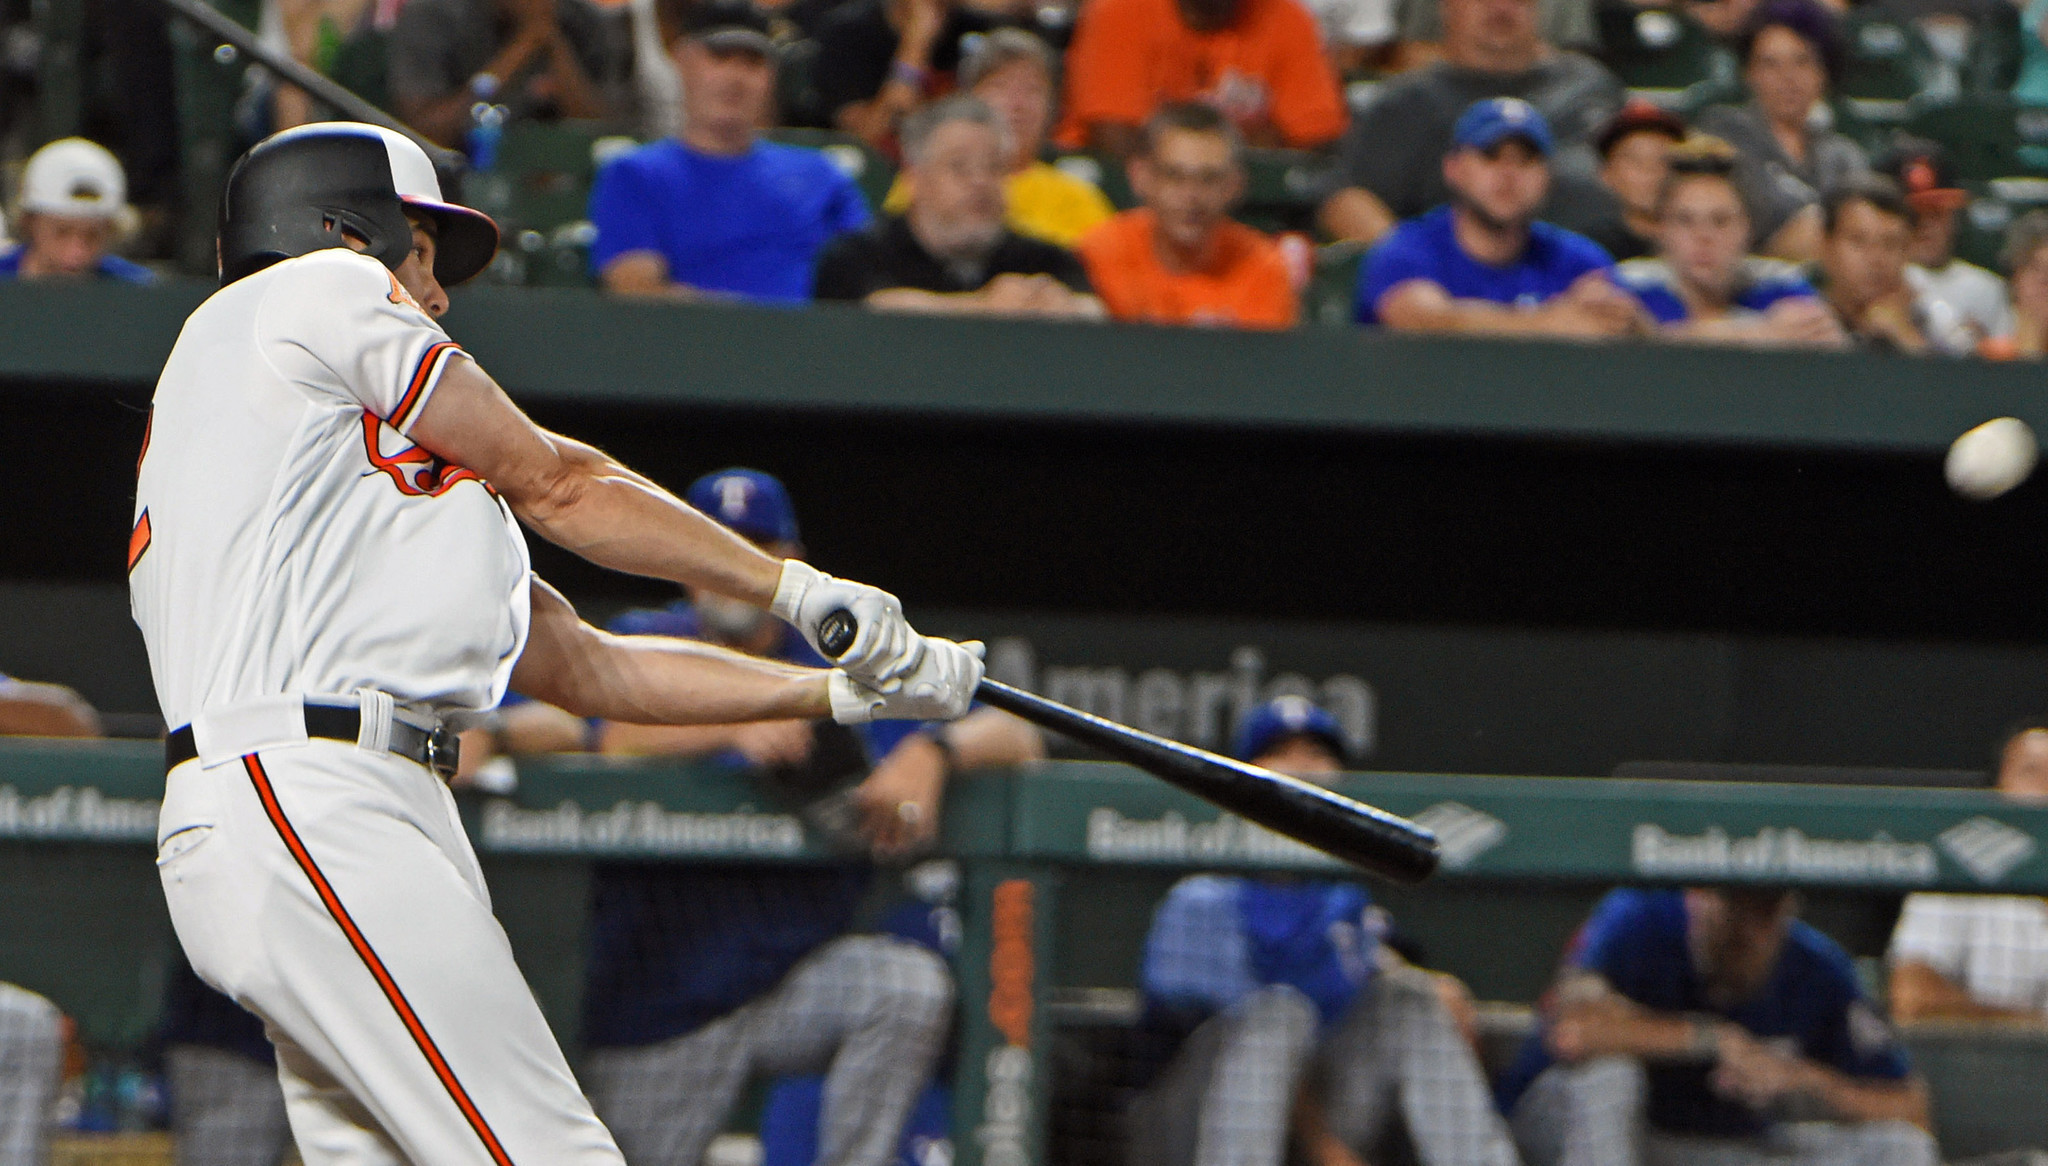 Bal-hot-streak-for-orioles-seth-smith-coincides-with-two-familiar-occurences-days-off-and-trade-rumors-20170719